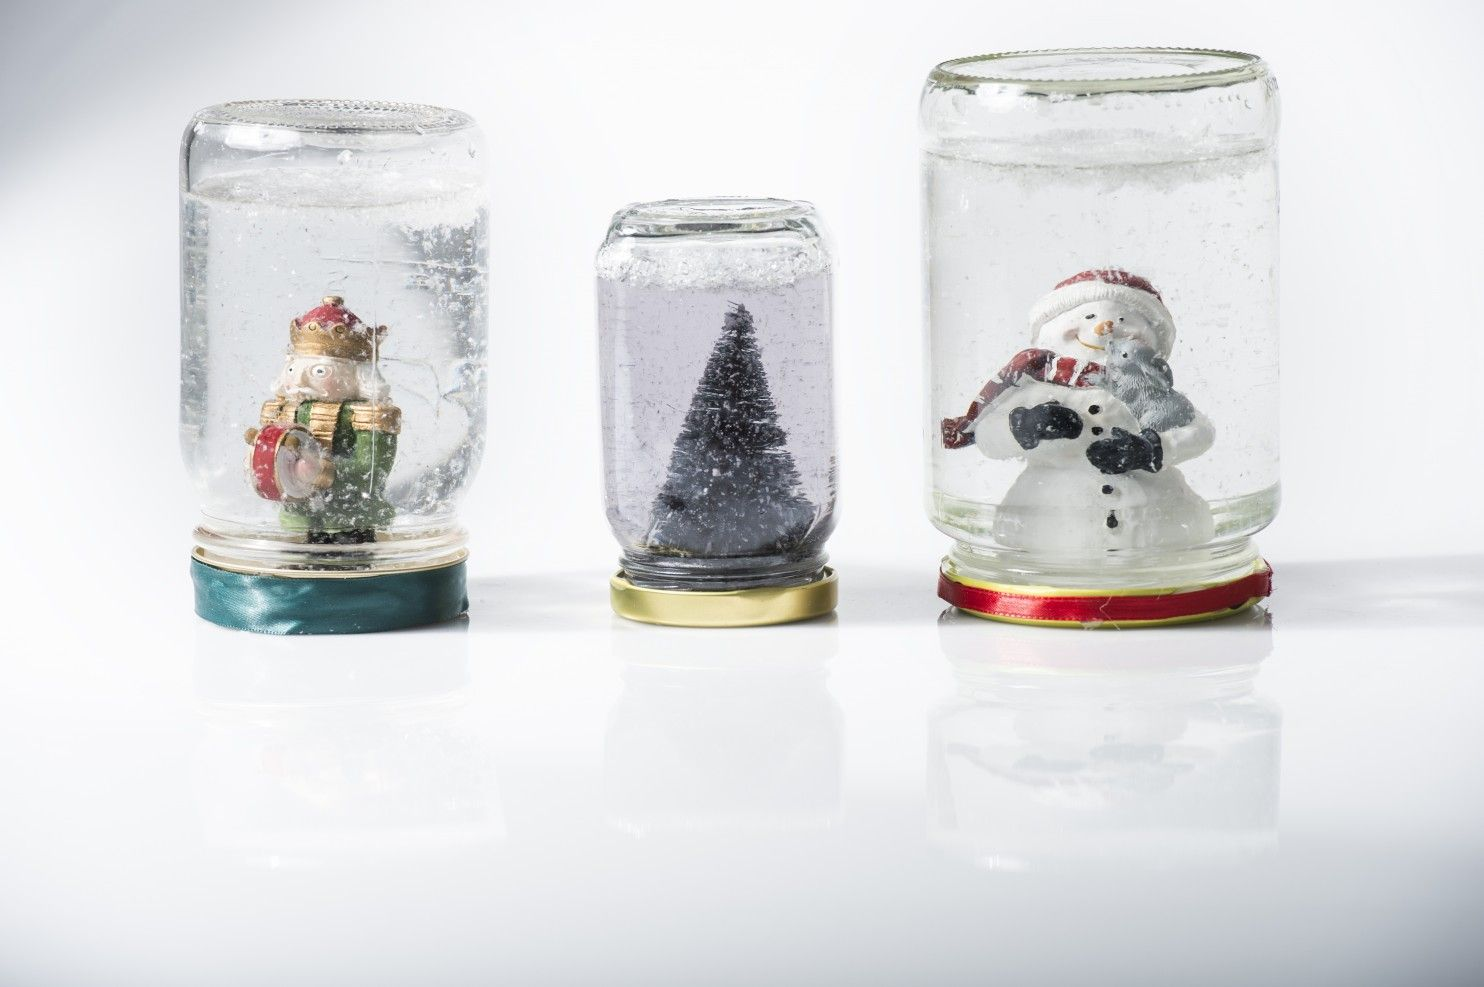 Hoping For Snow Make A Wintry Scene With These Snow Globes